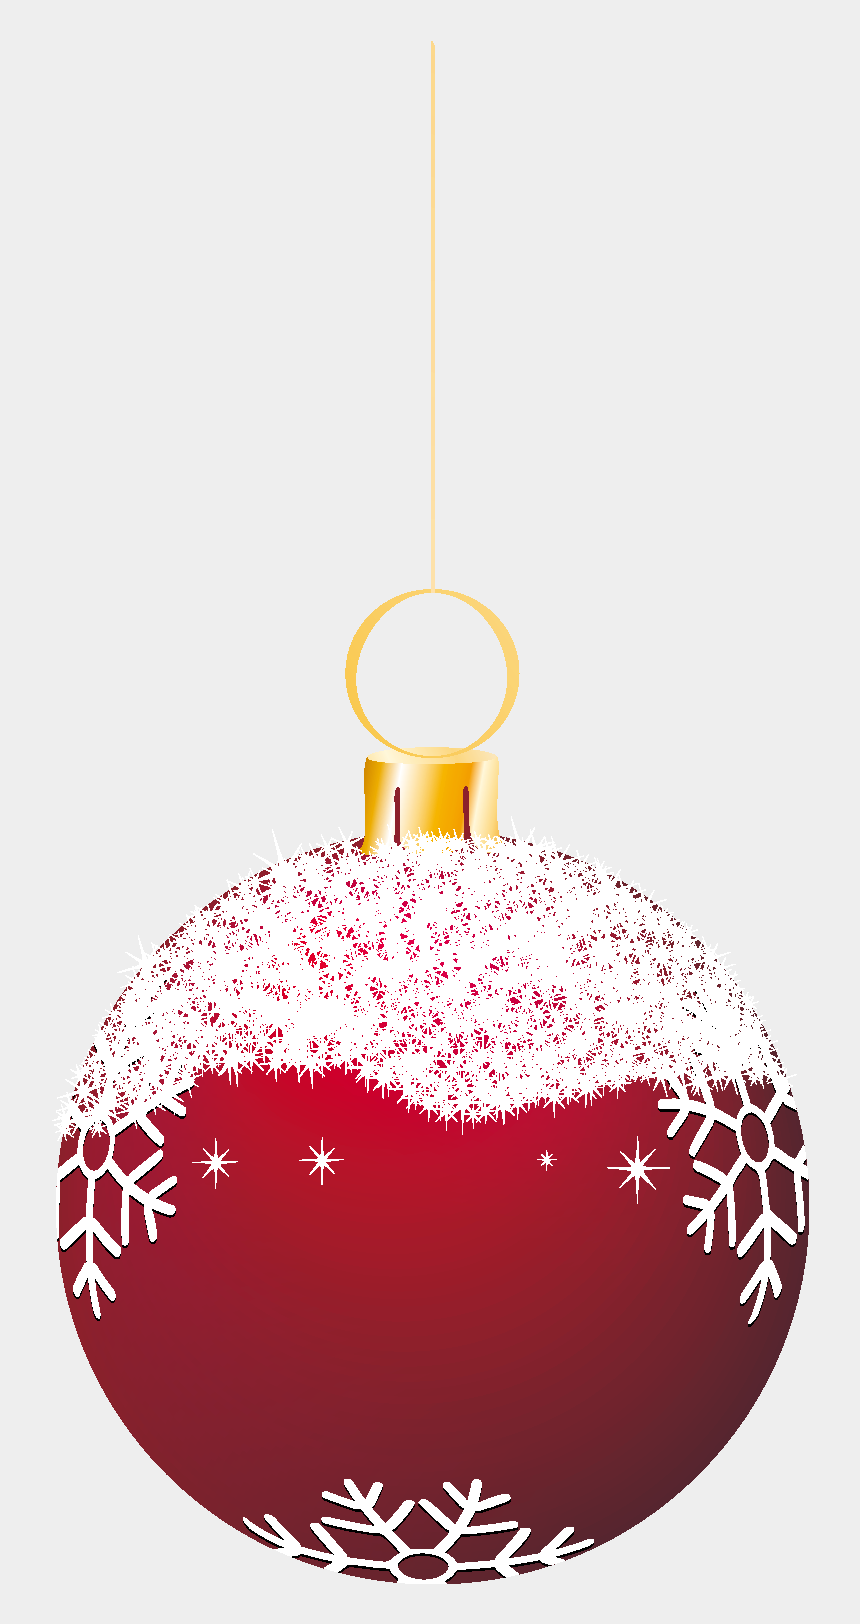 hanging ornament clipart, Cartoons - Christmas Hanging Ball - Transparent Christmas Balls Png